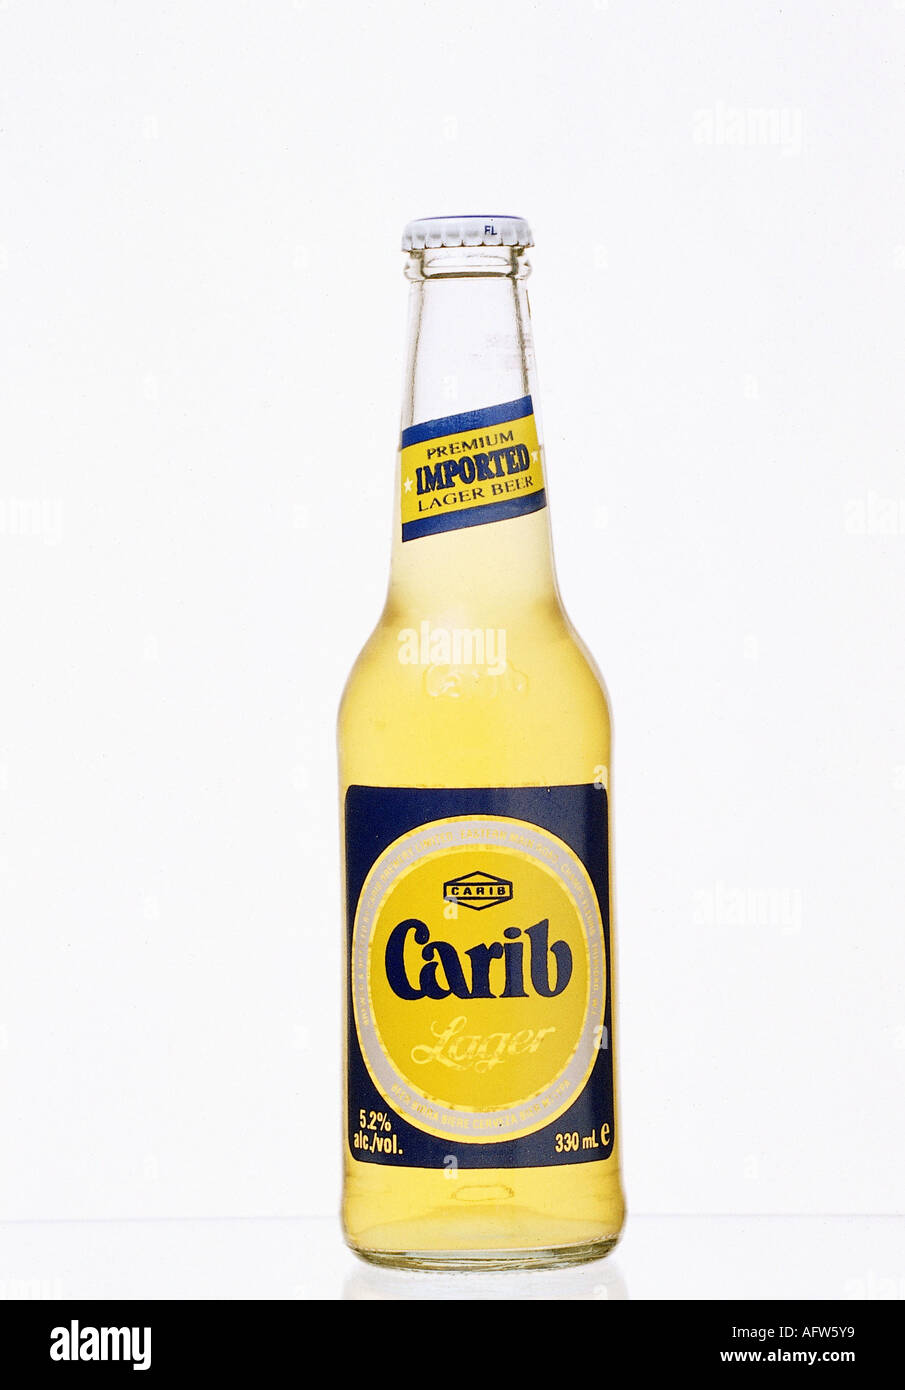 carib dating trinidad